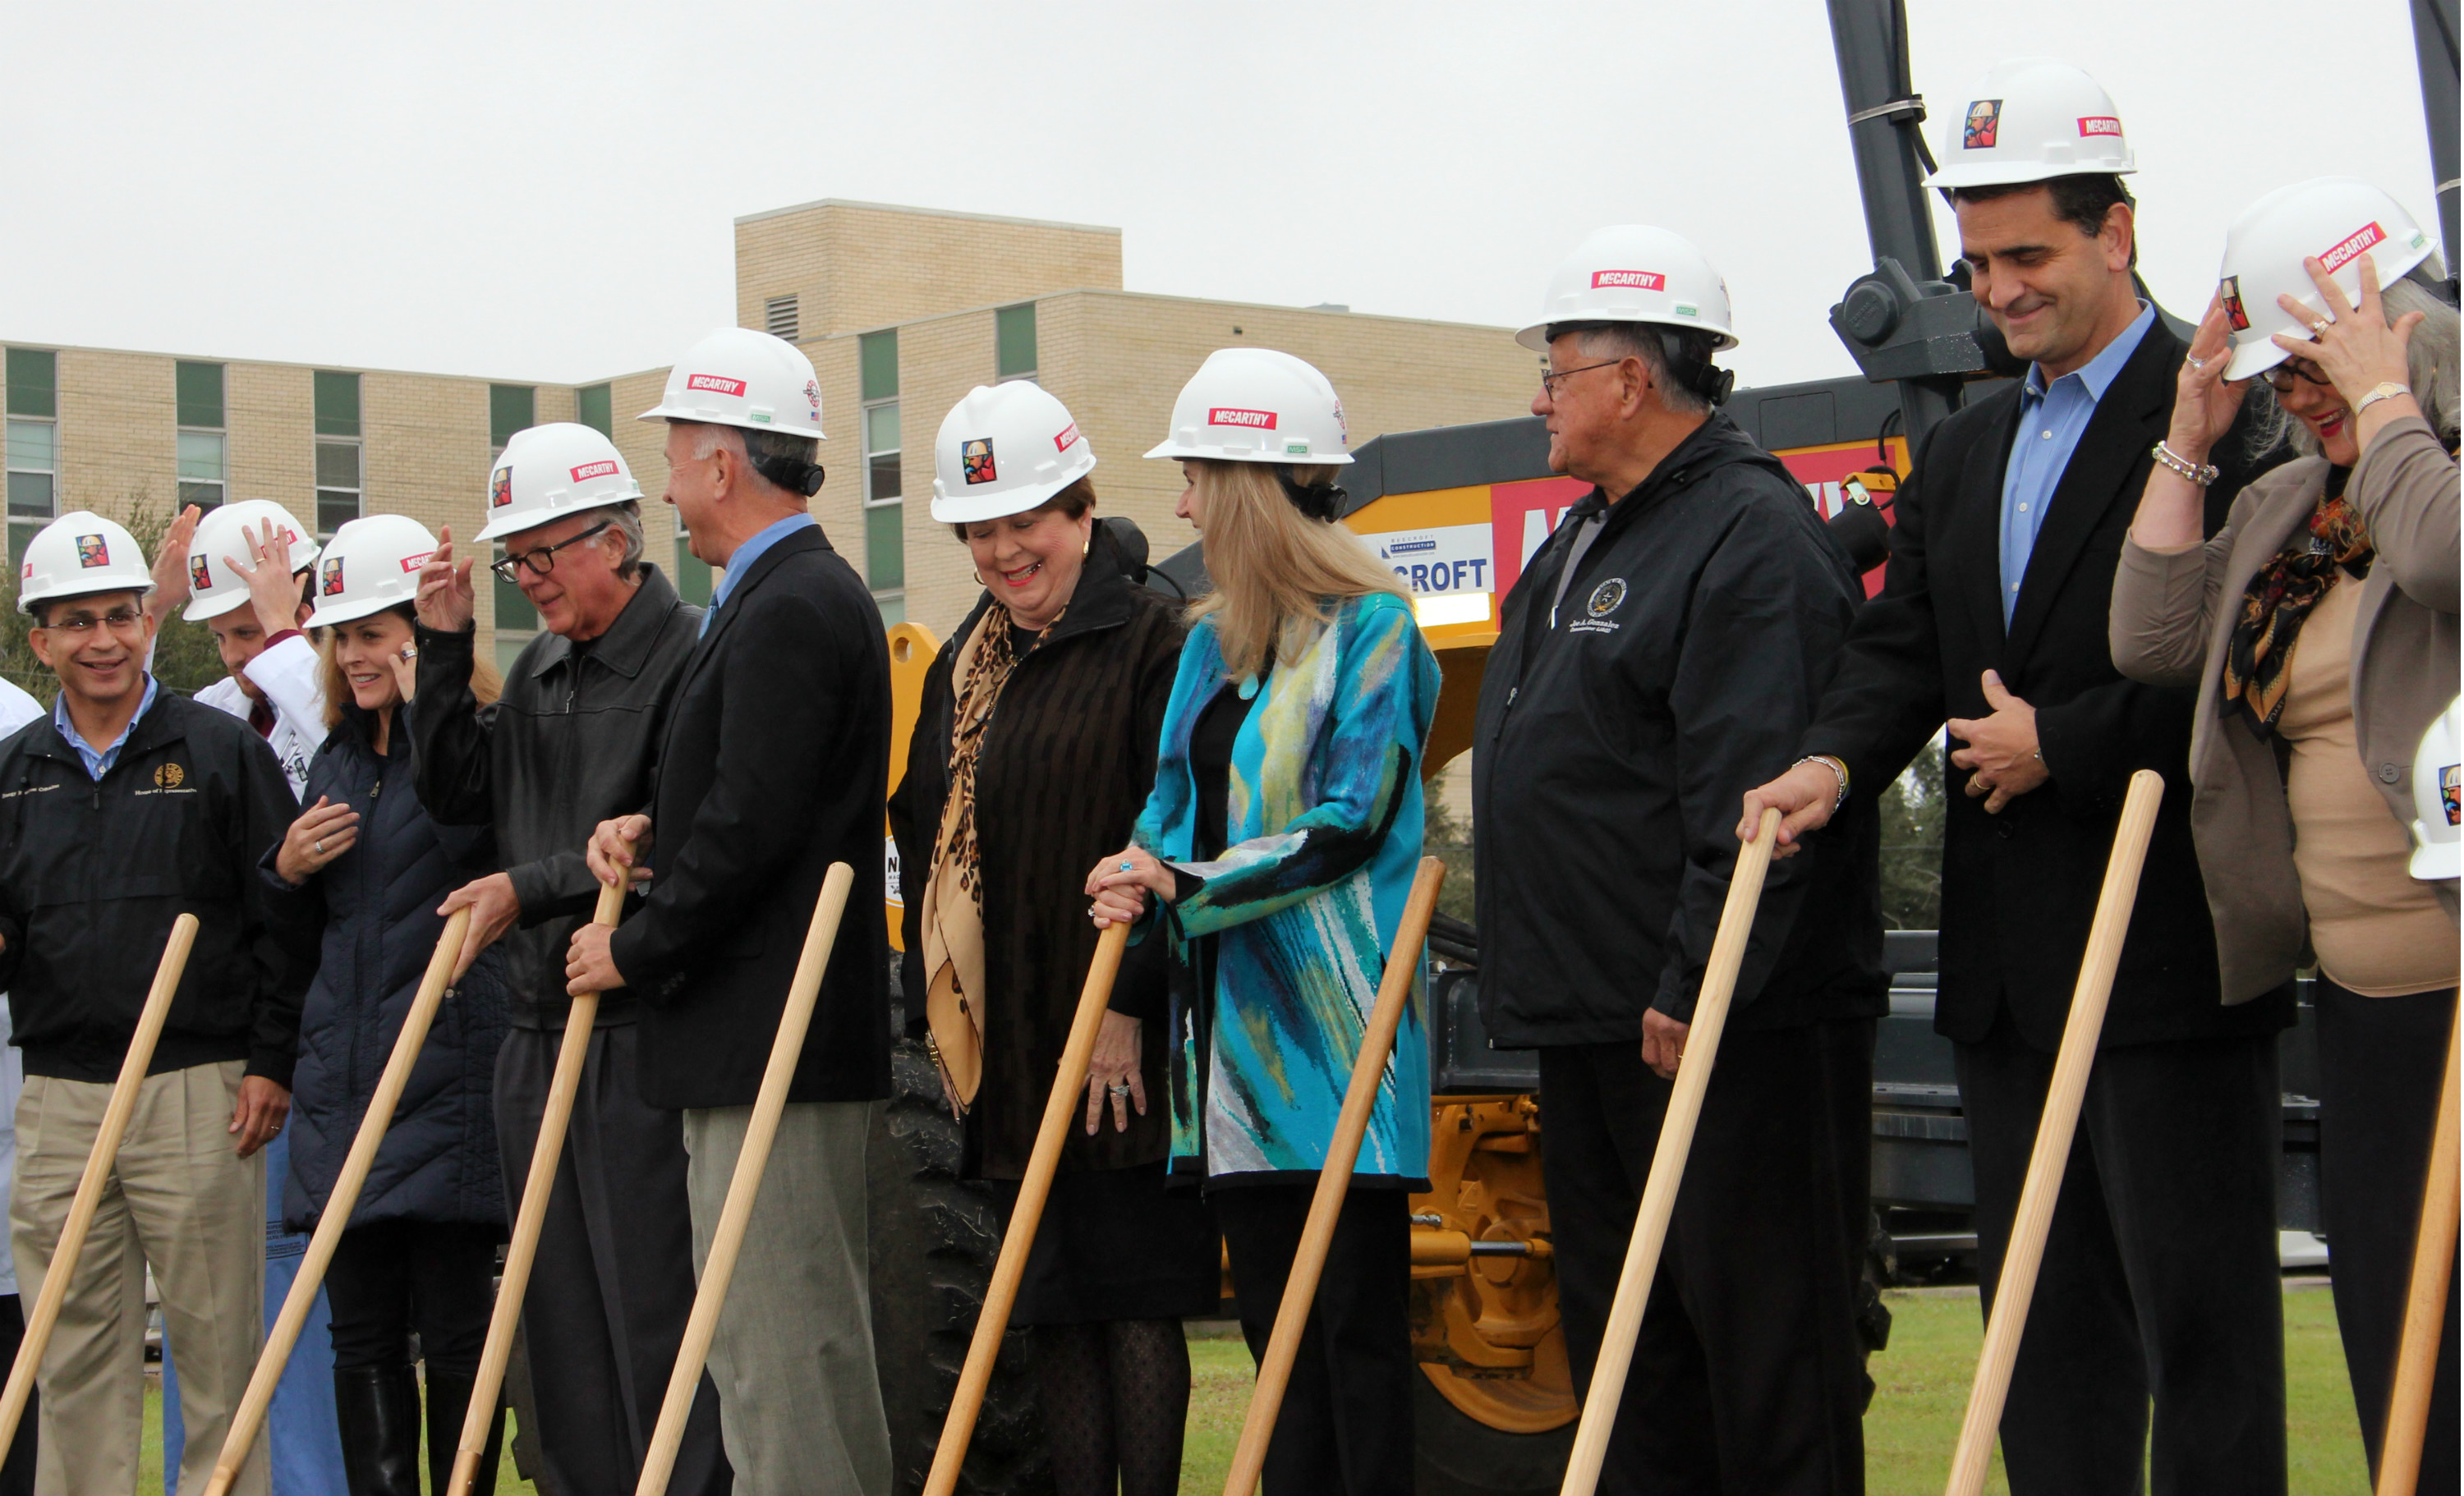 Members of the CHRISTUS Spohn Executive Team, the CHRISTUS Spohn Foundation Board of Directors and city of Corpus Christi and Nueces County officials attend a groundbreaking for the Dr. Hector P. Garcia Memorial Family Health Center.